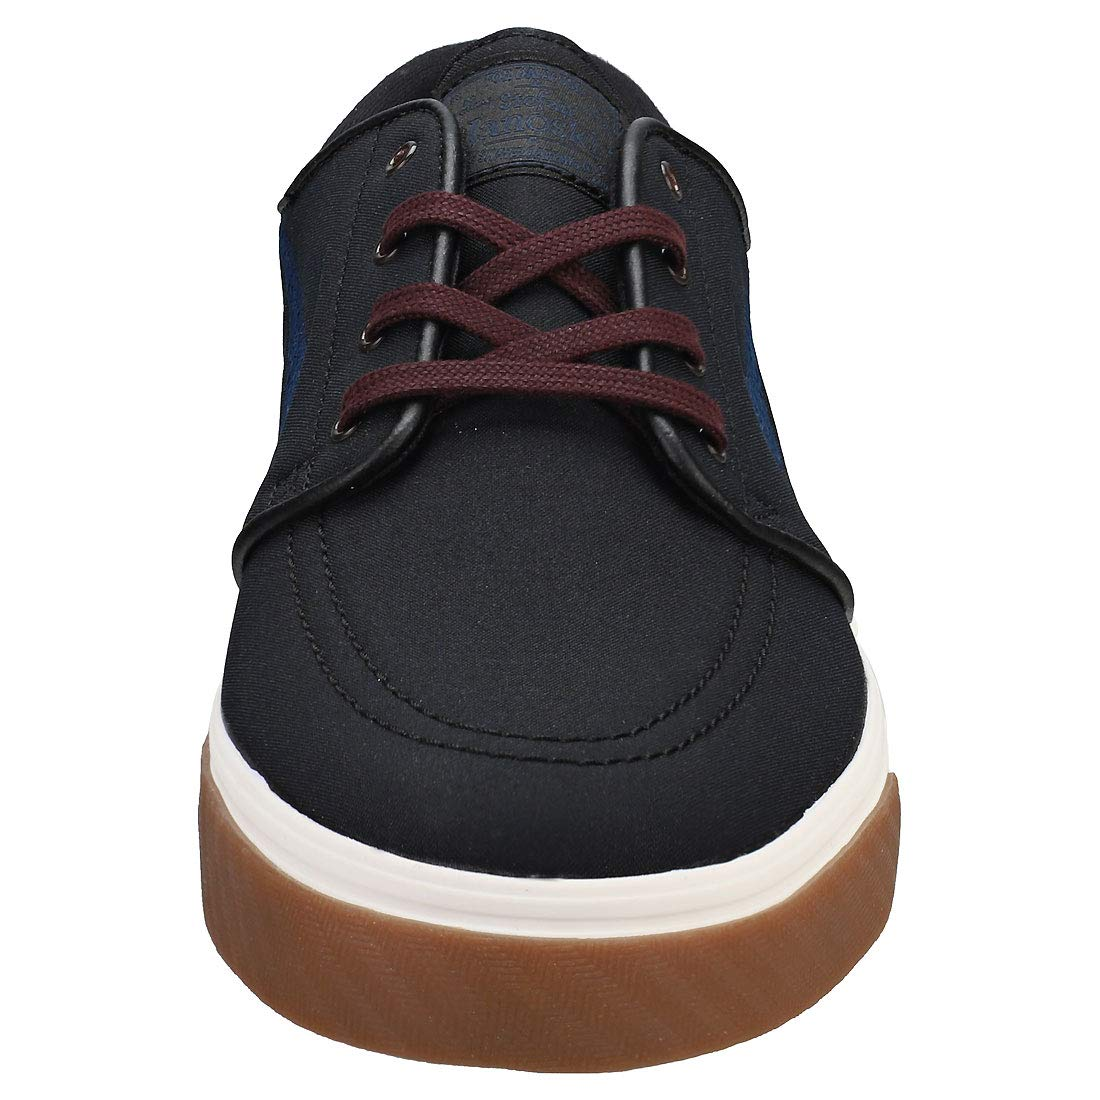 282a859b3c18 ... coupon code for amazon nike mens zoom stefan janoski skate shoe  skateboarding 162d0 c1aff